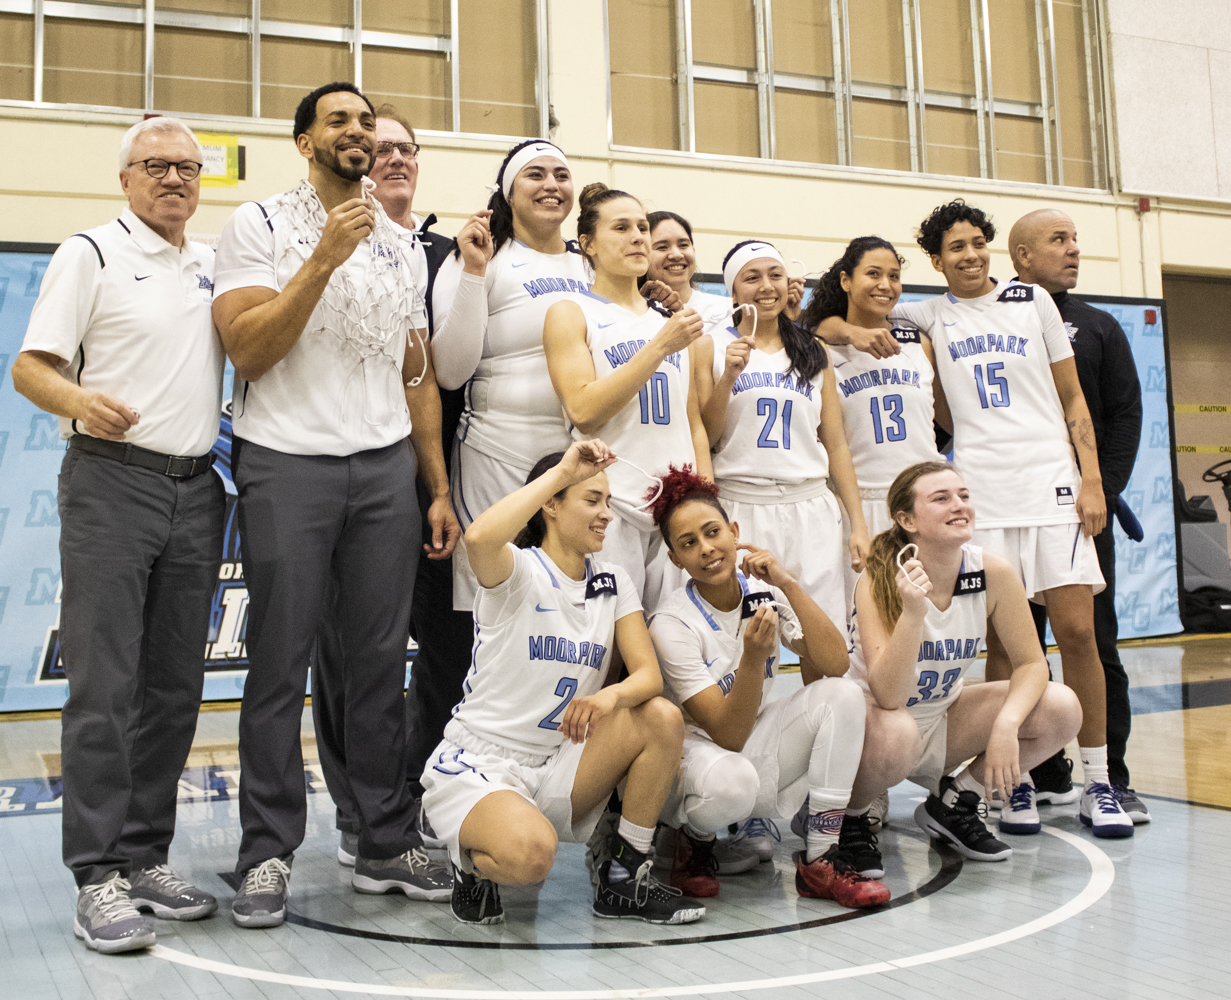 The Moorpark College women's basketball team pose for a photo after their CCCAA Southern California regional final win over Glendale College on Saturday, March 9 in the Moorpark College gym. Each player holds a piece of the court's net after playing their final game in the gym.